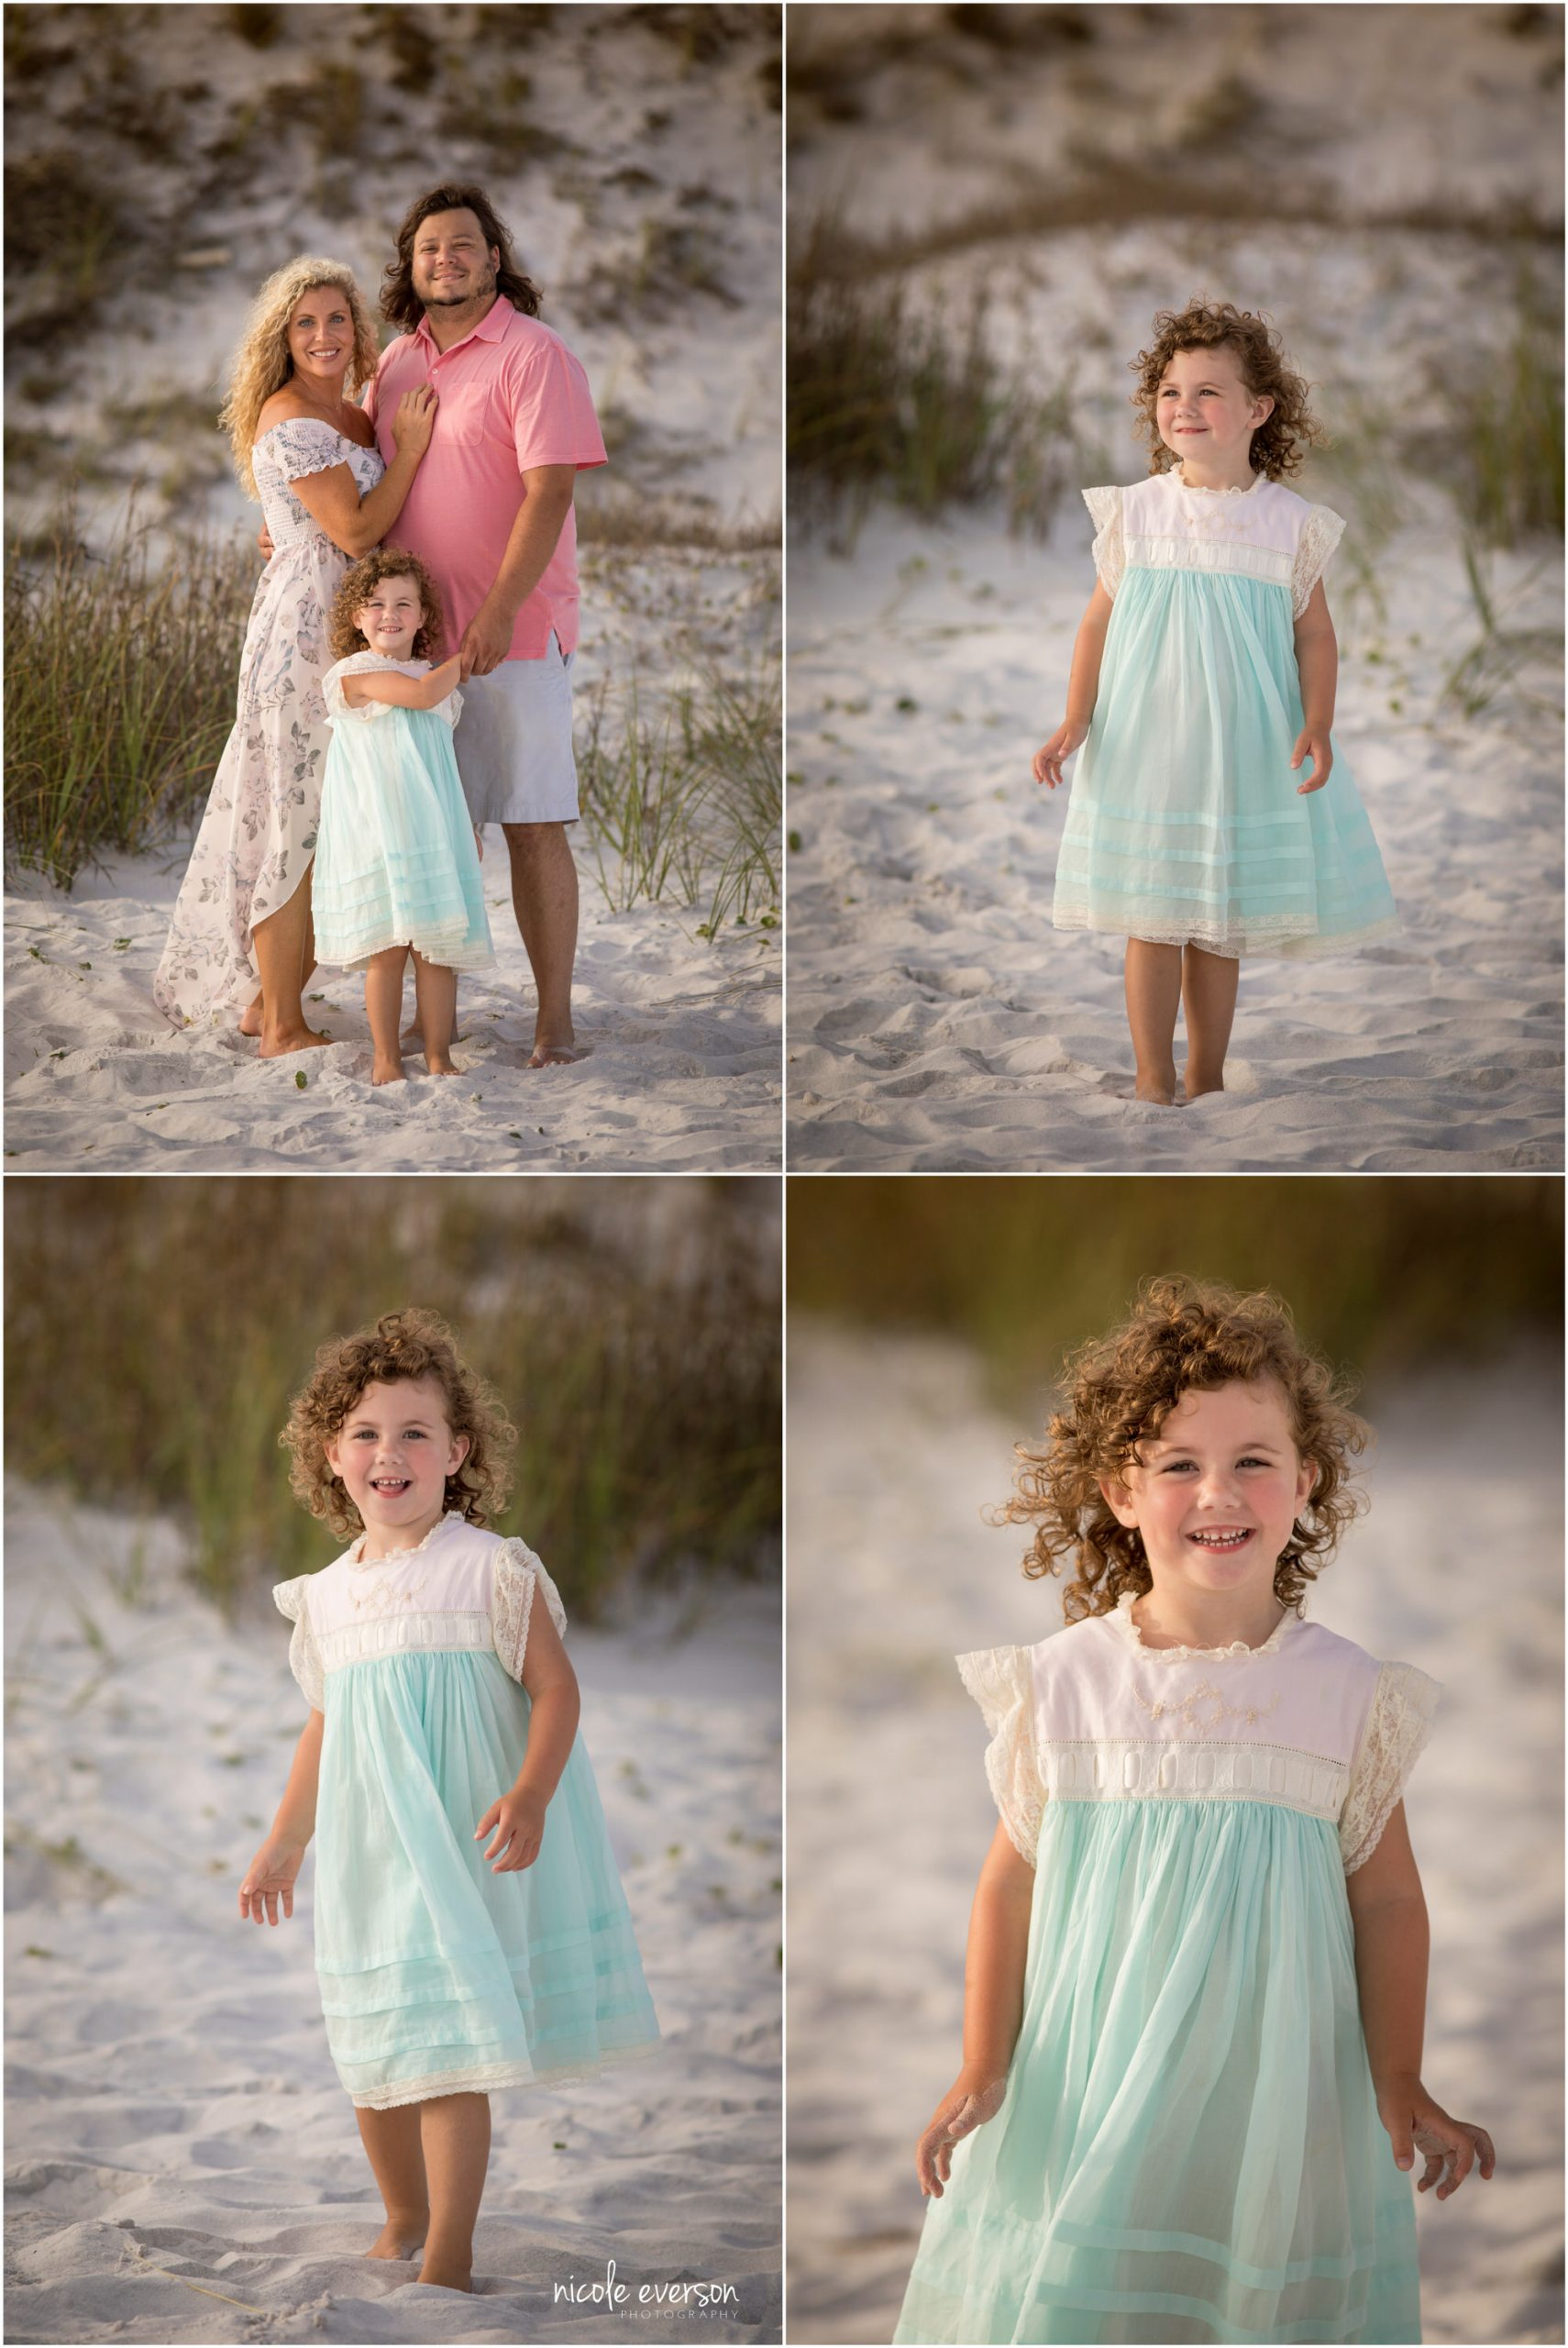 Little girl with curly hair in white and blue dress. Photographed by Nicole Everson, Watercolor Inn Beach Photographer.